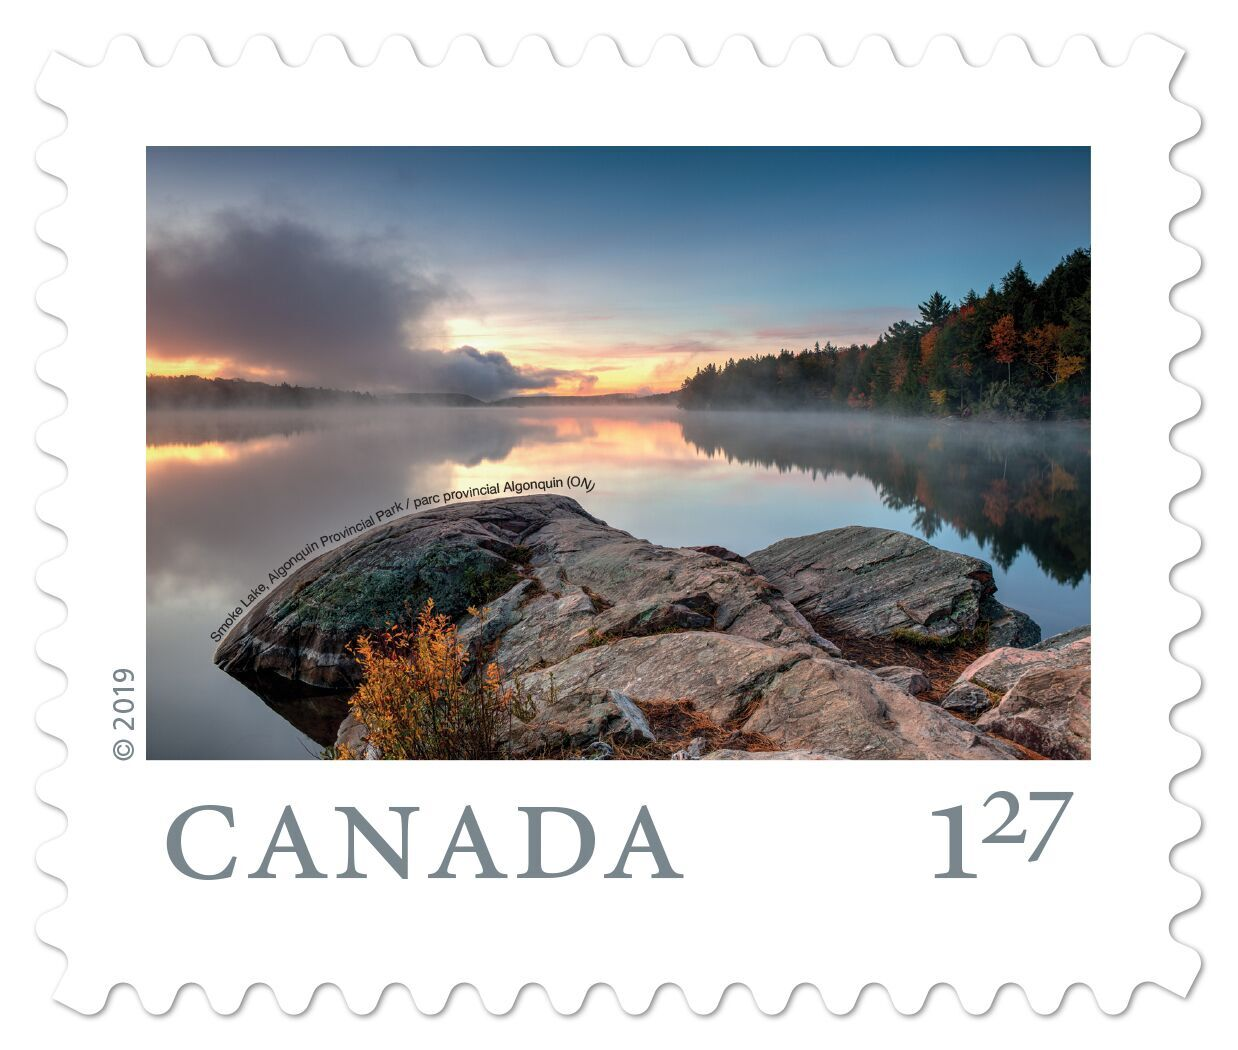 Canada - From Far and Wide (January 14, 2019) Algonquin Provincial Park, Ontario (U.S. rate, from booklet of 6)